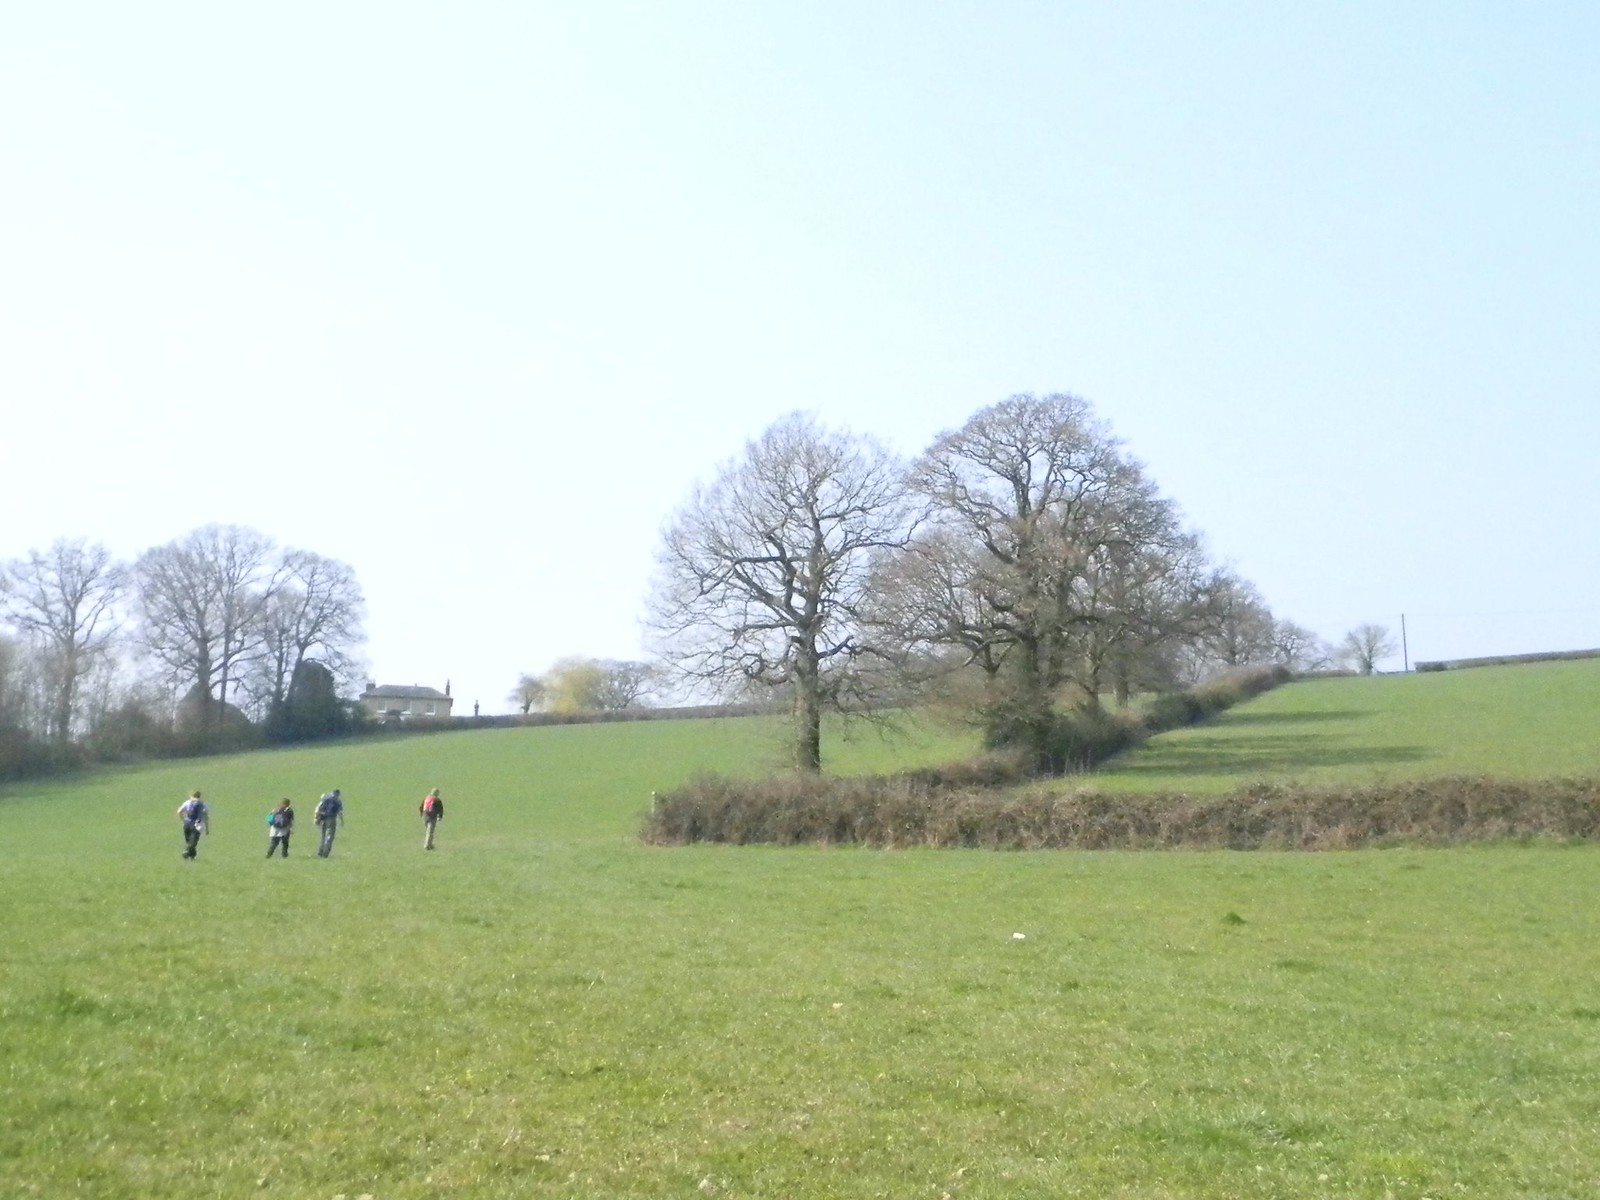 across a field Sevenoaks to Westerham